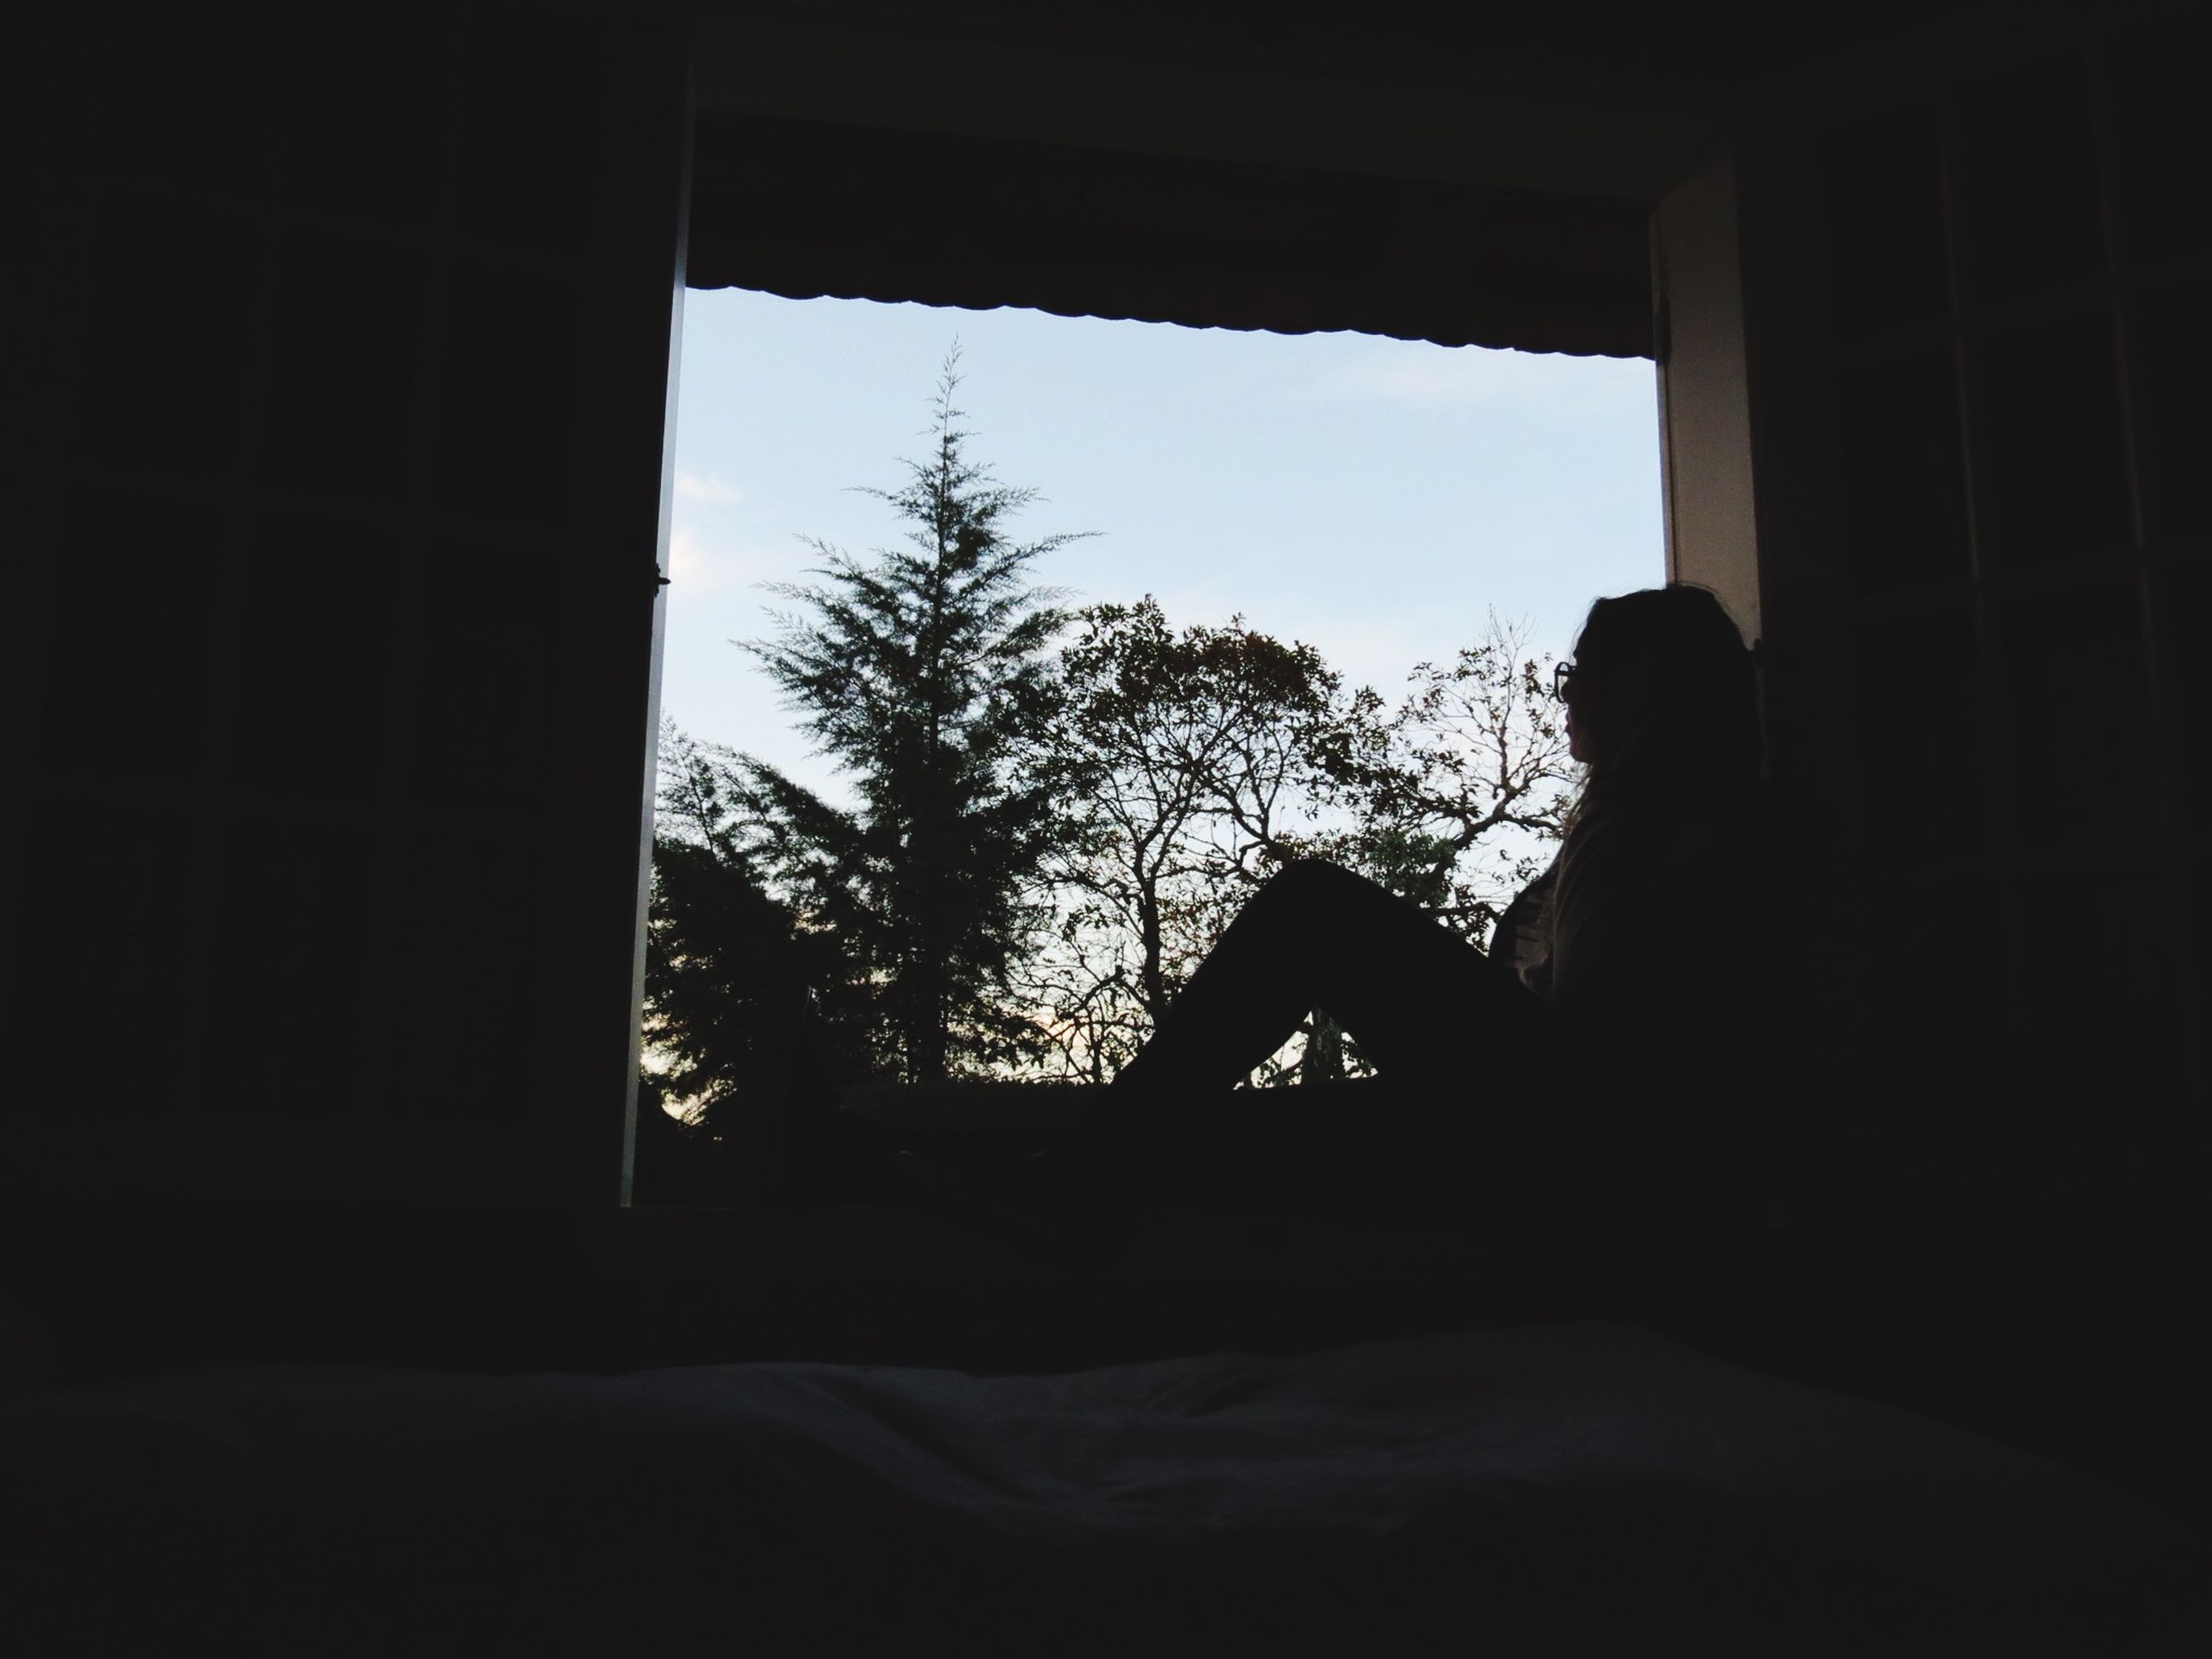 indoors, silhouette, window, tree, dark, sunlight, looking through window, clear sky, home interior, day, sky, copy space, built structure, tranquility, house, nature, architecture, glass - material